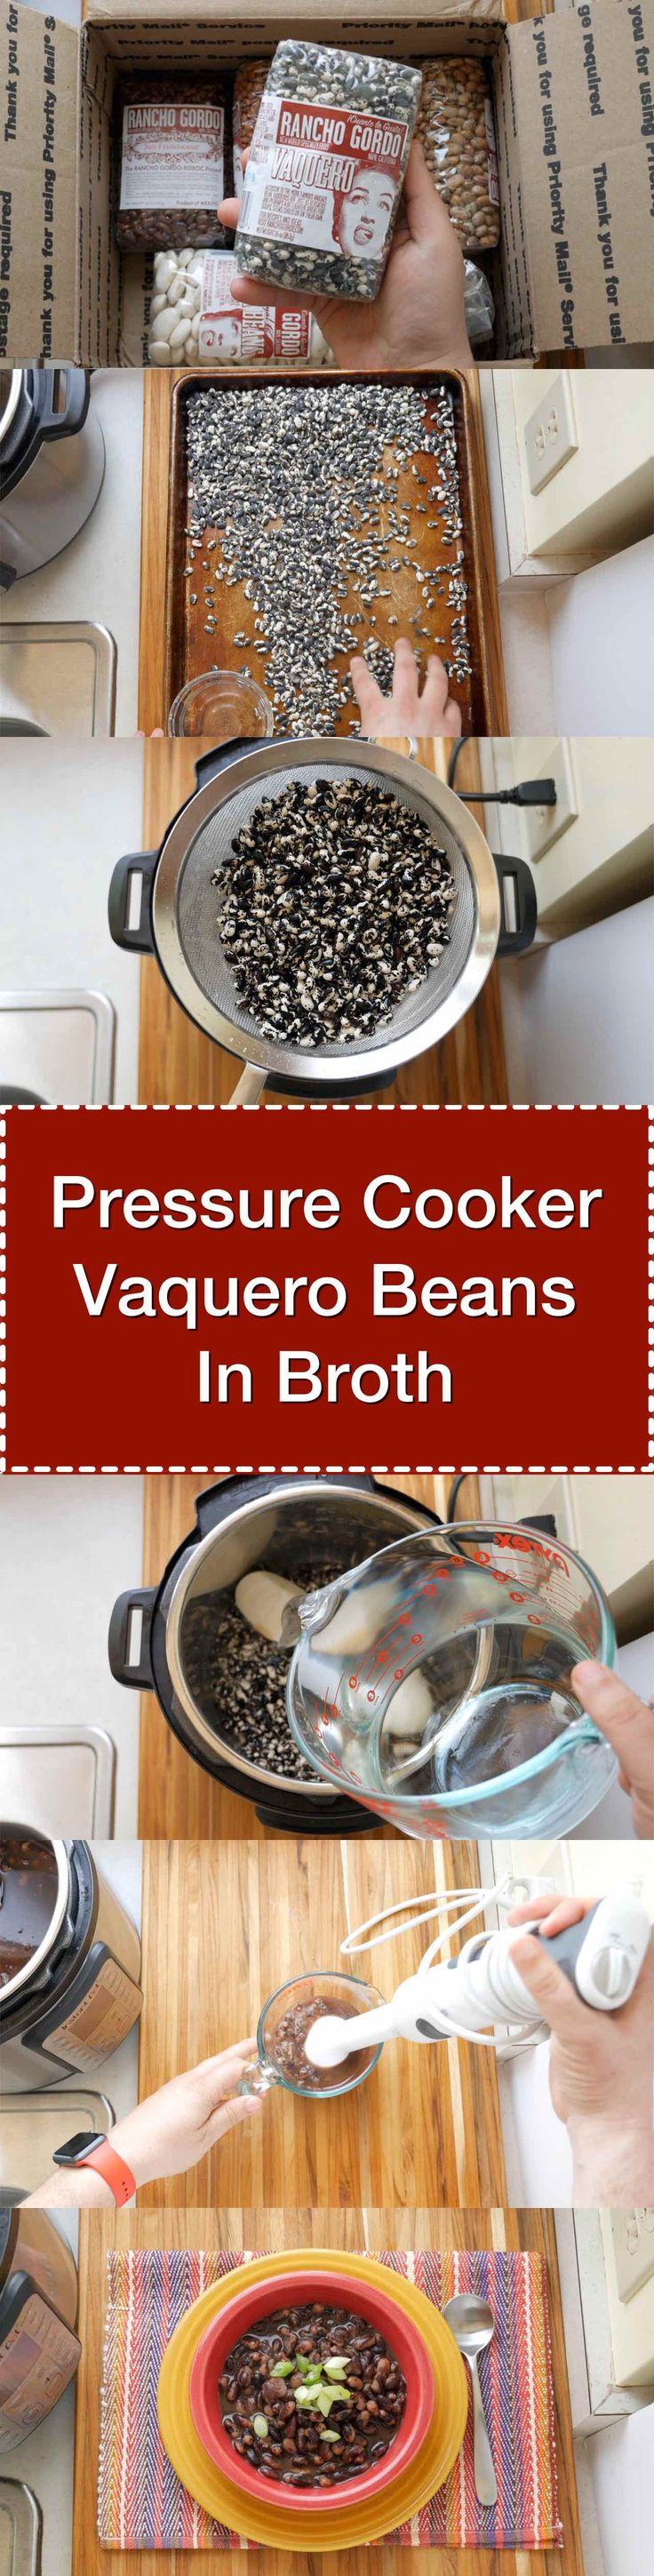 Pressure Cooker Vaquero Beans in Broth - Simple, delicious, and done in about an hour thanks to the pressure cooker. #Recipe #PressureCooker via @DadCooksDinner